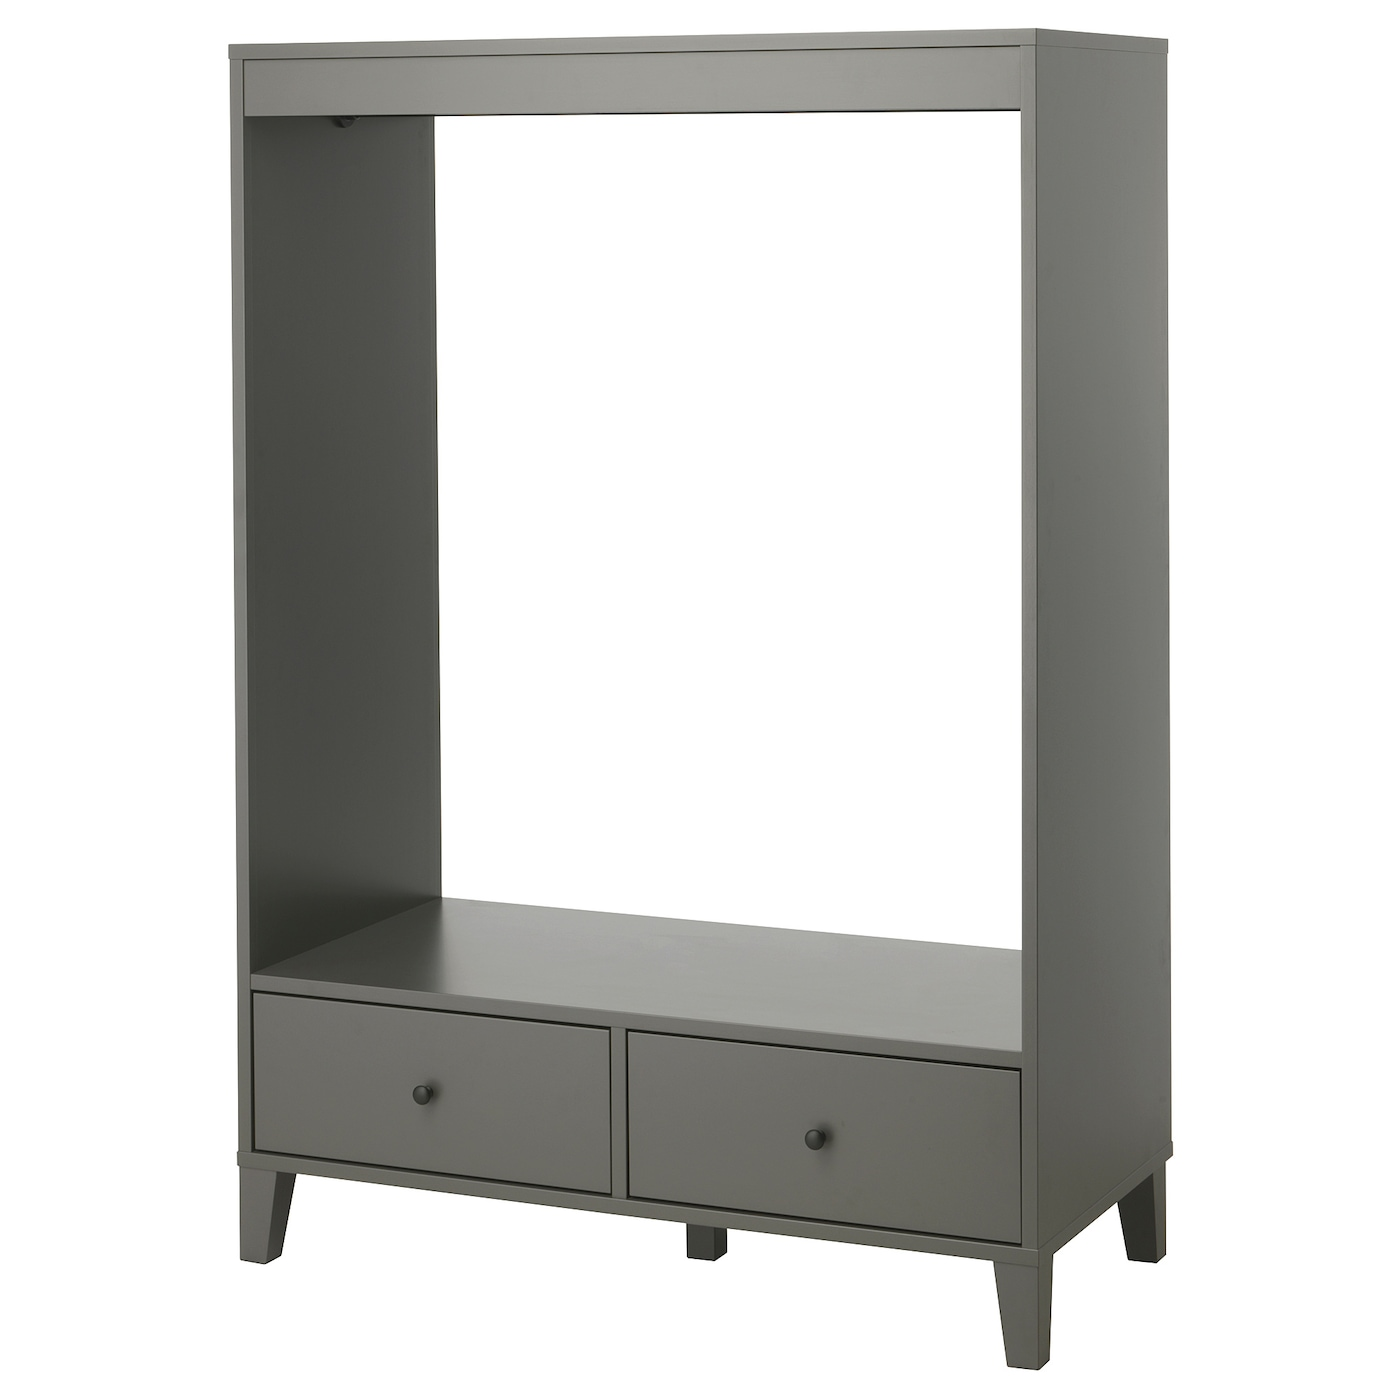 IKEA BRYGGJA open wardrobe Smooth running drawers with pull-out stop.